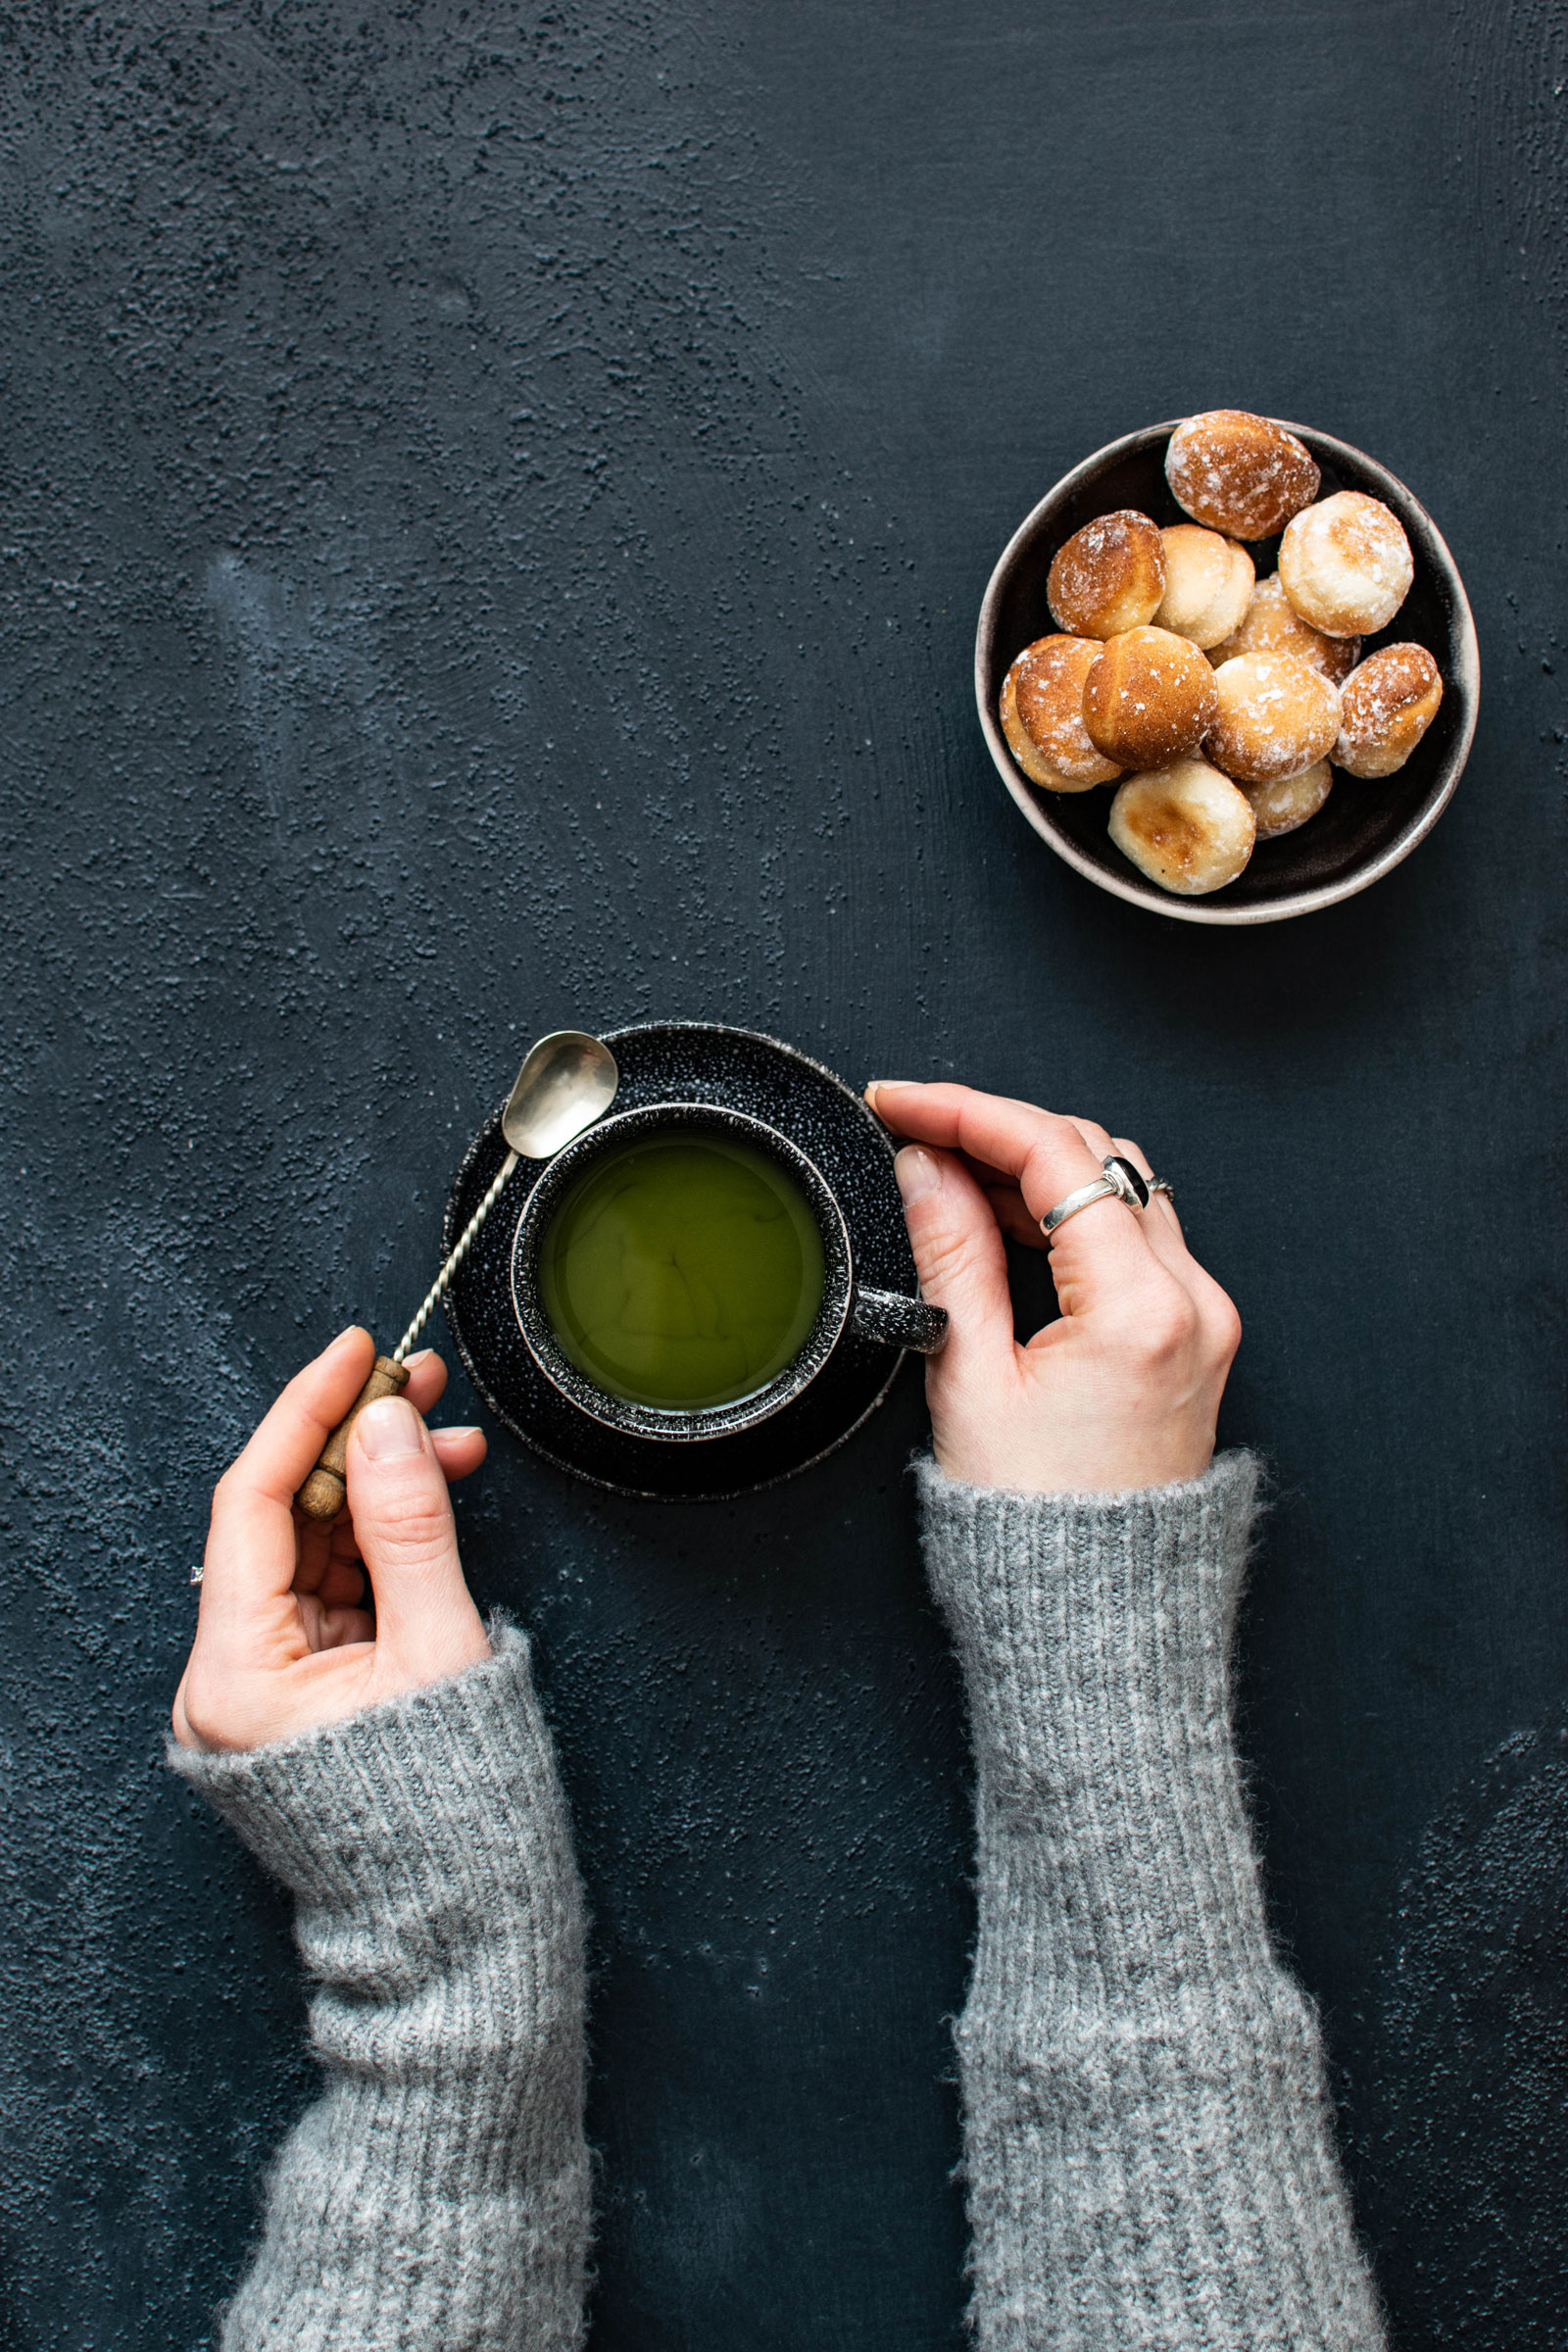 Green Tea and Bread | How Drinking Green Tea Can Help Promote A Healthy Diet